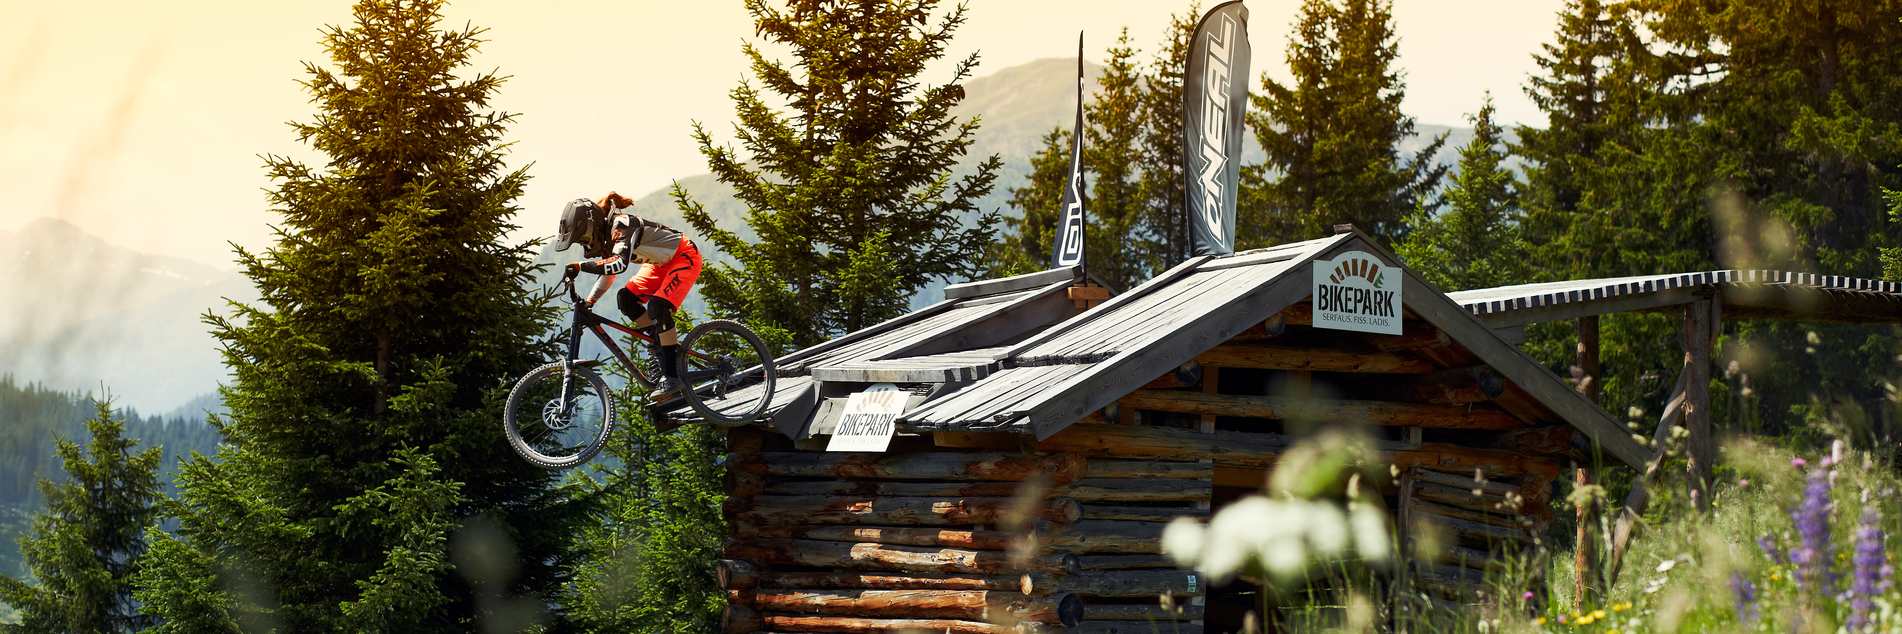 Jump over the hut in the Bikepark Serfaus-Fiss-Ladis in Tyrol | © Serfaus-Fiss-Ladis